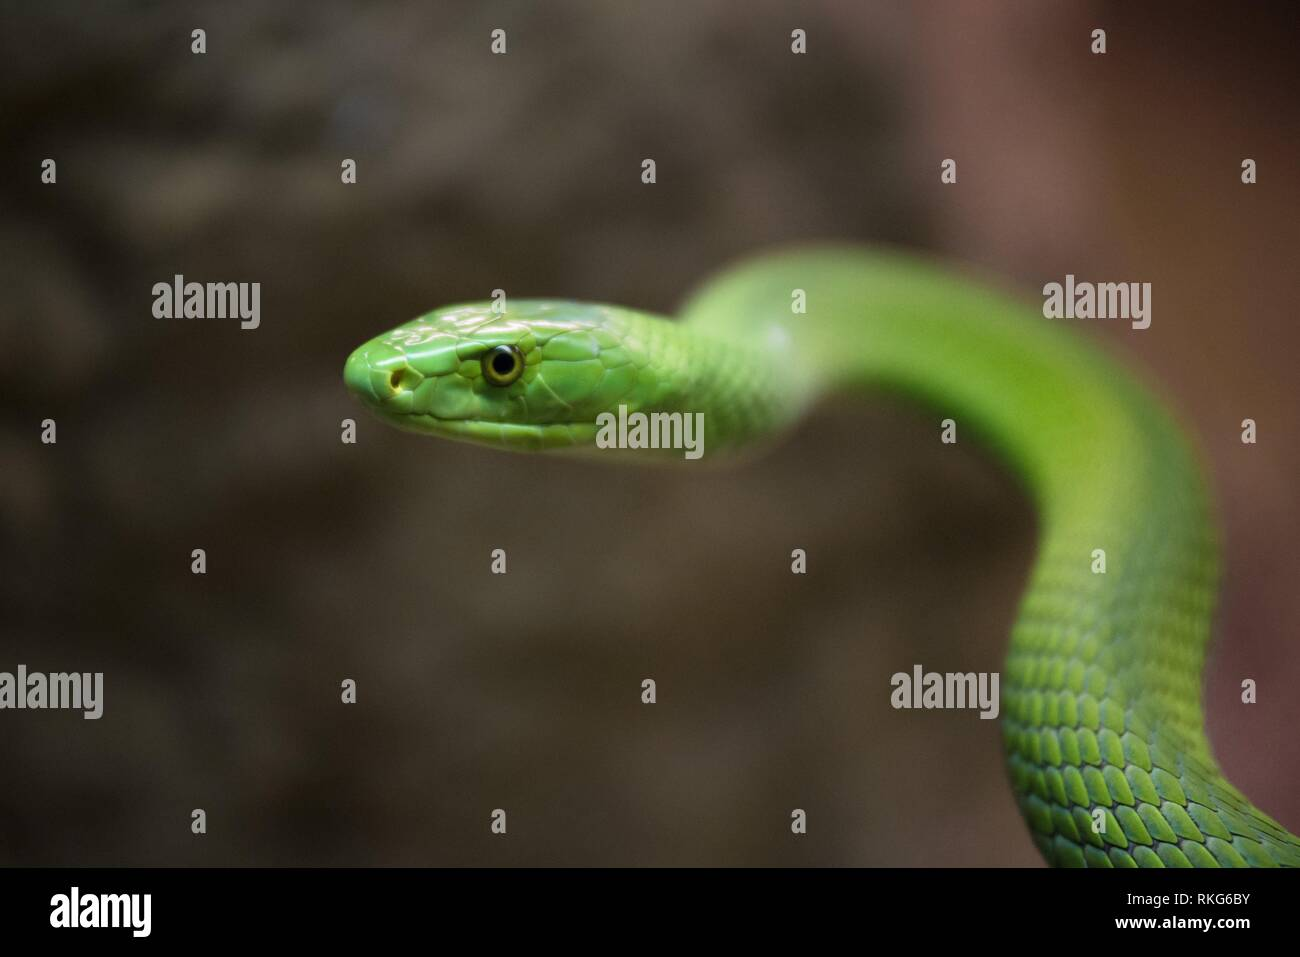 The African Beauty Snake High Resolution Stock Photography And Images Alamy